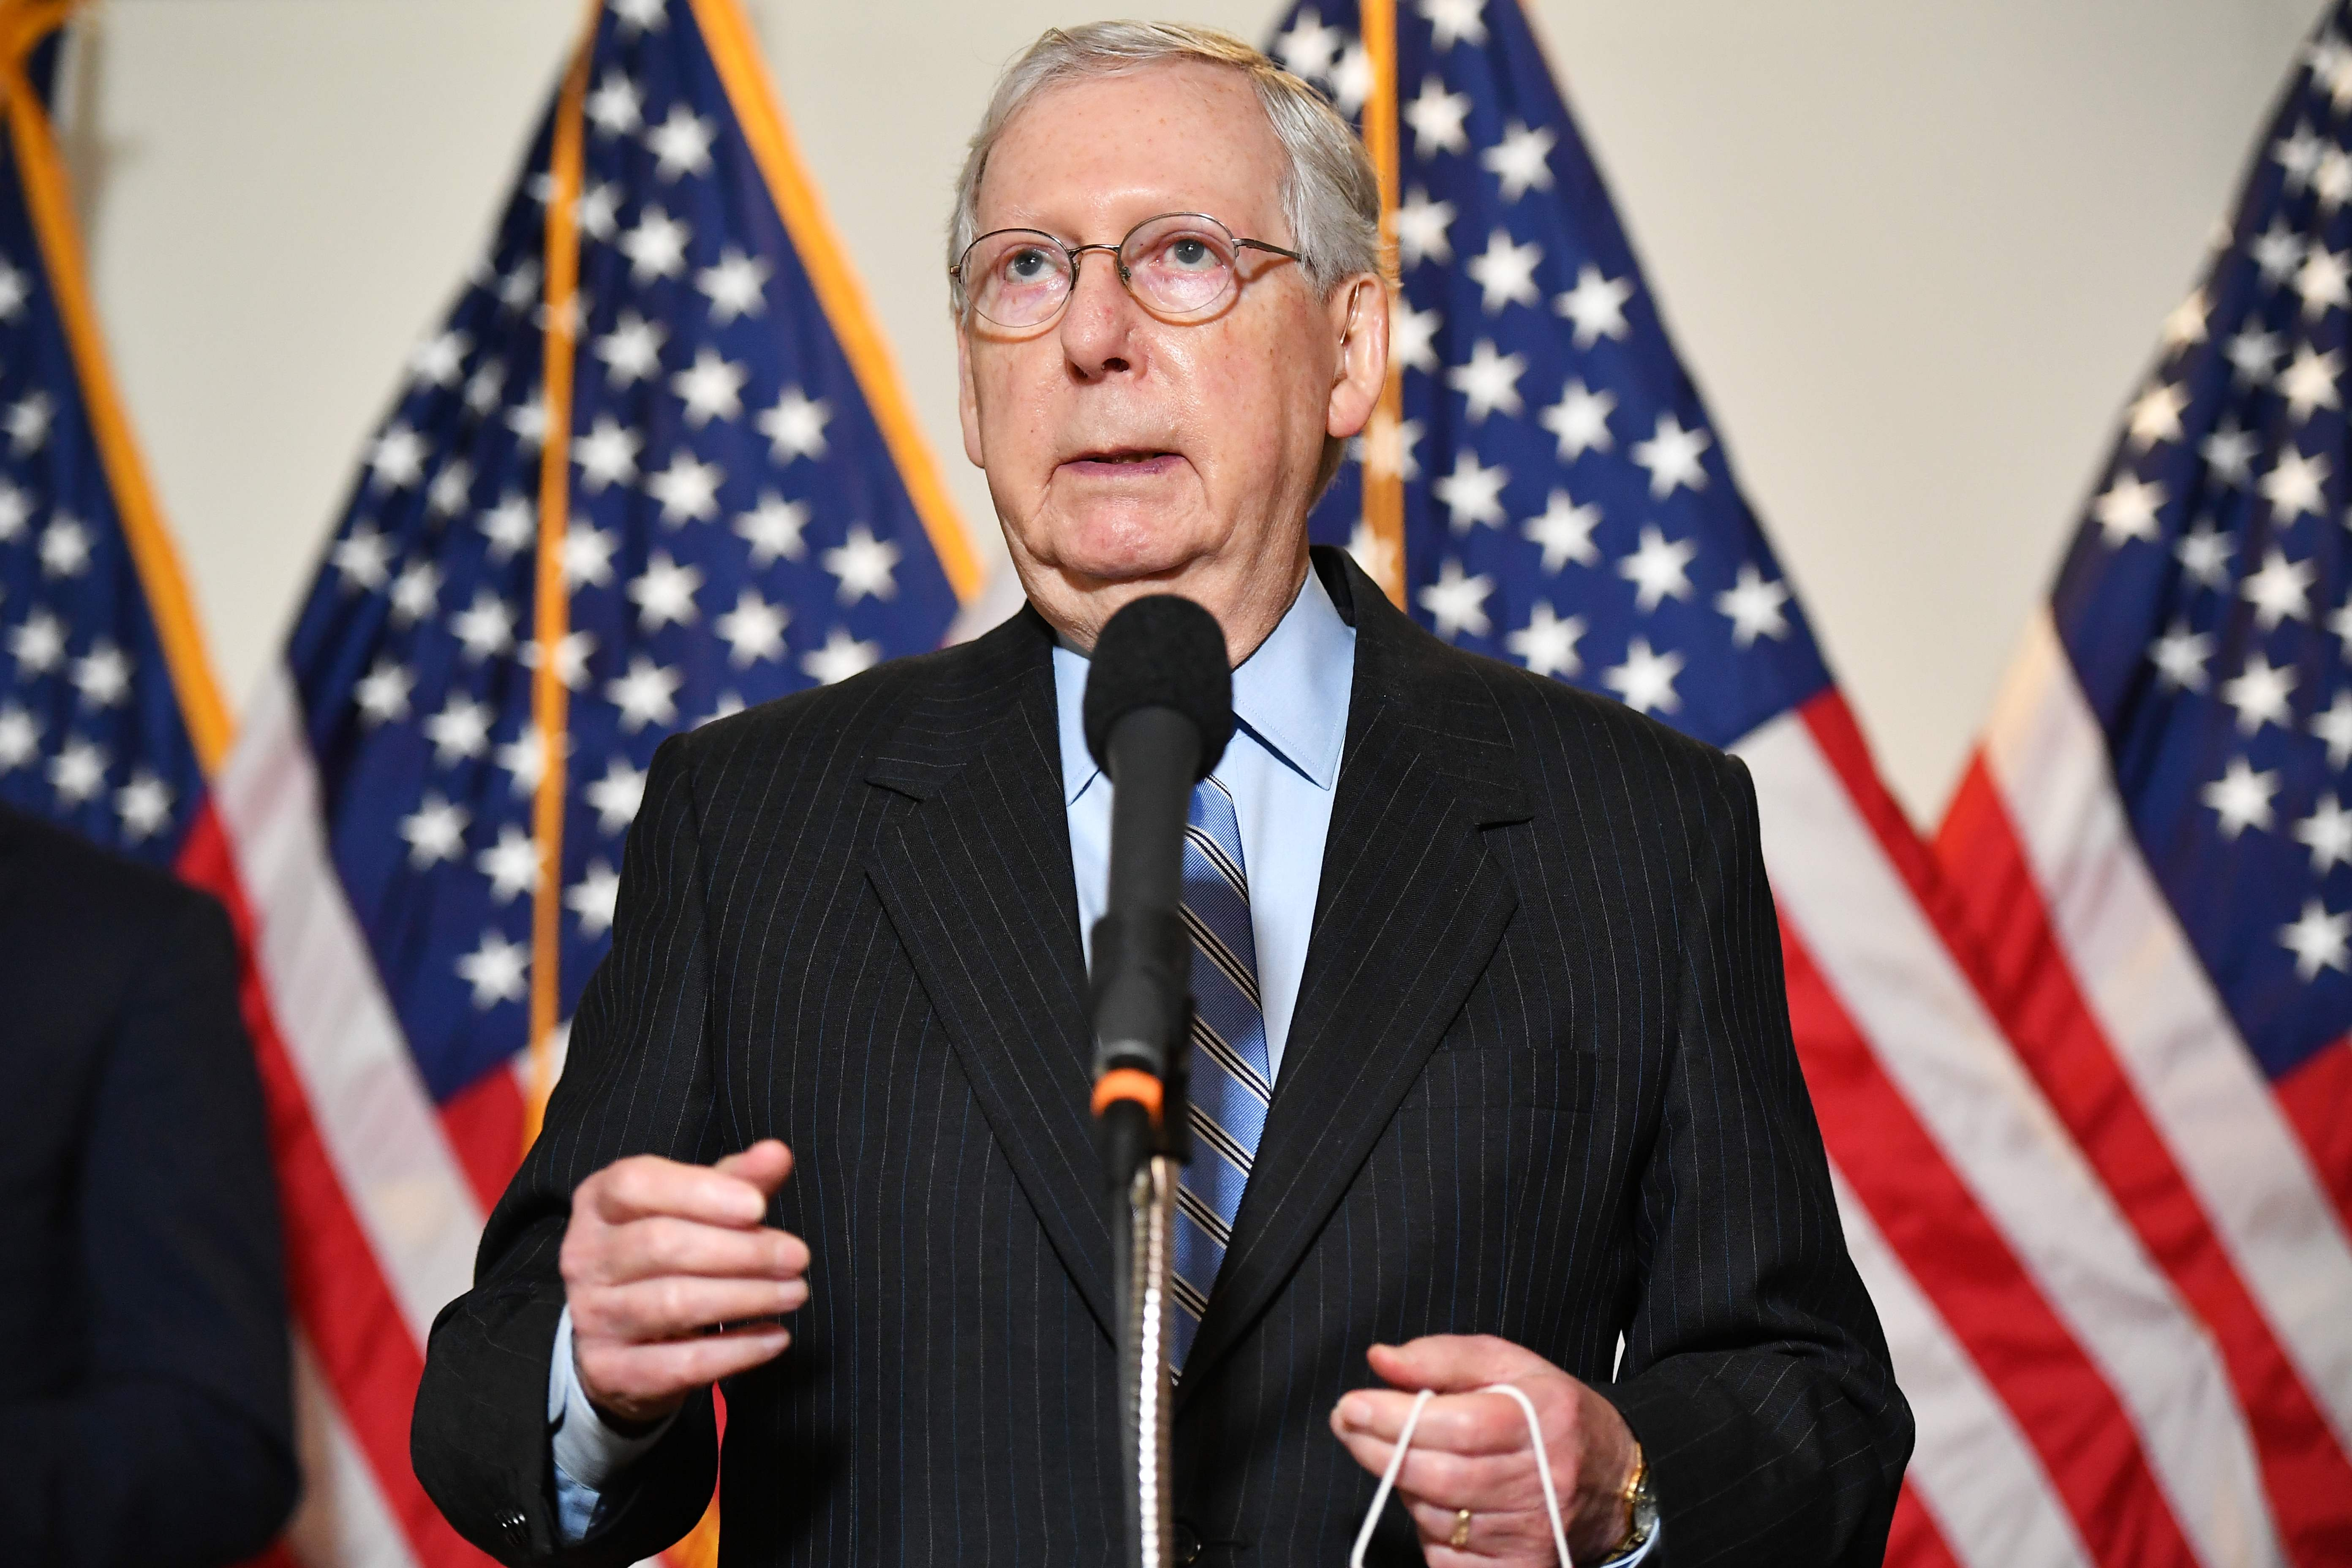 Election 2020 Mitch Mcconnell Gop Senators Inch Away From Trump